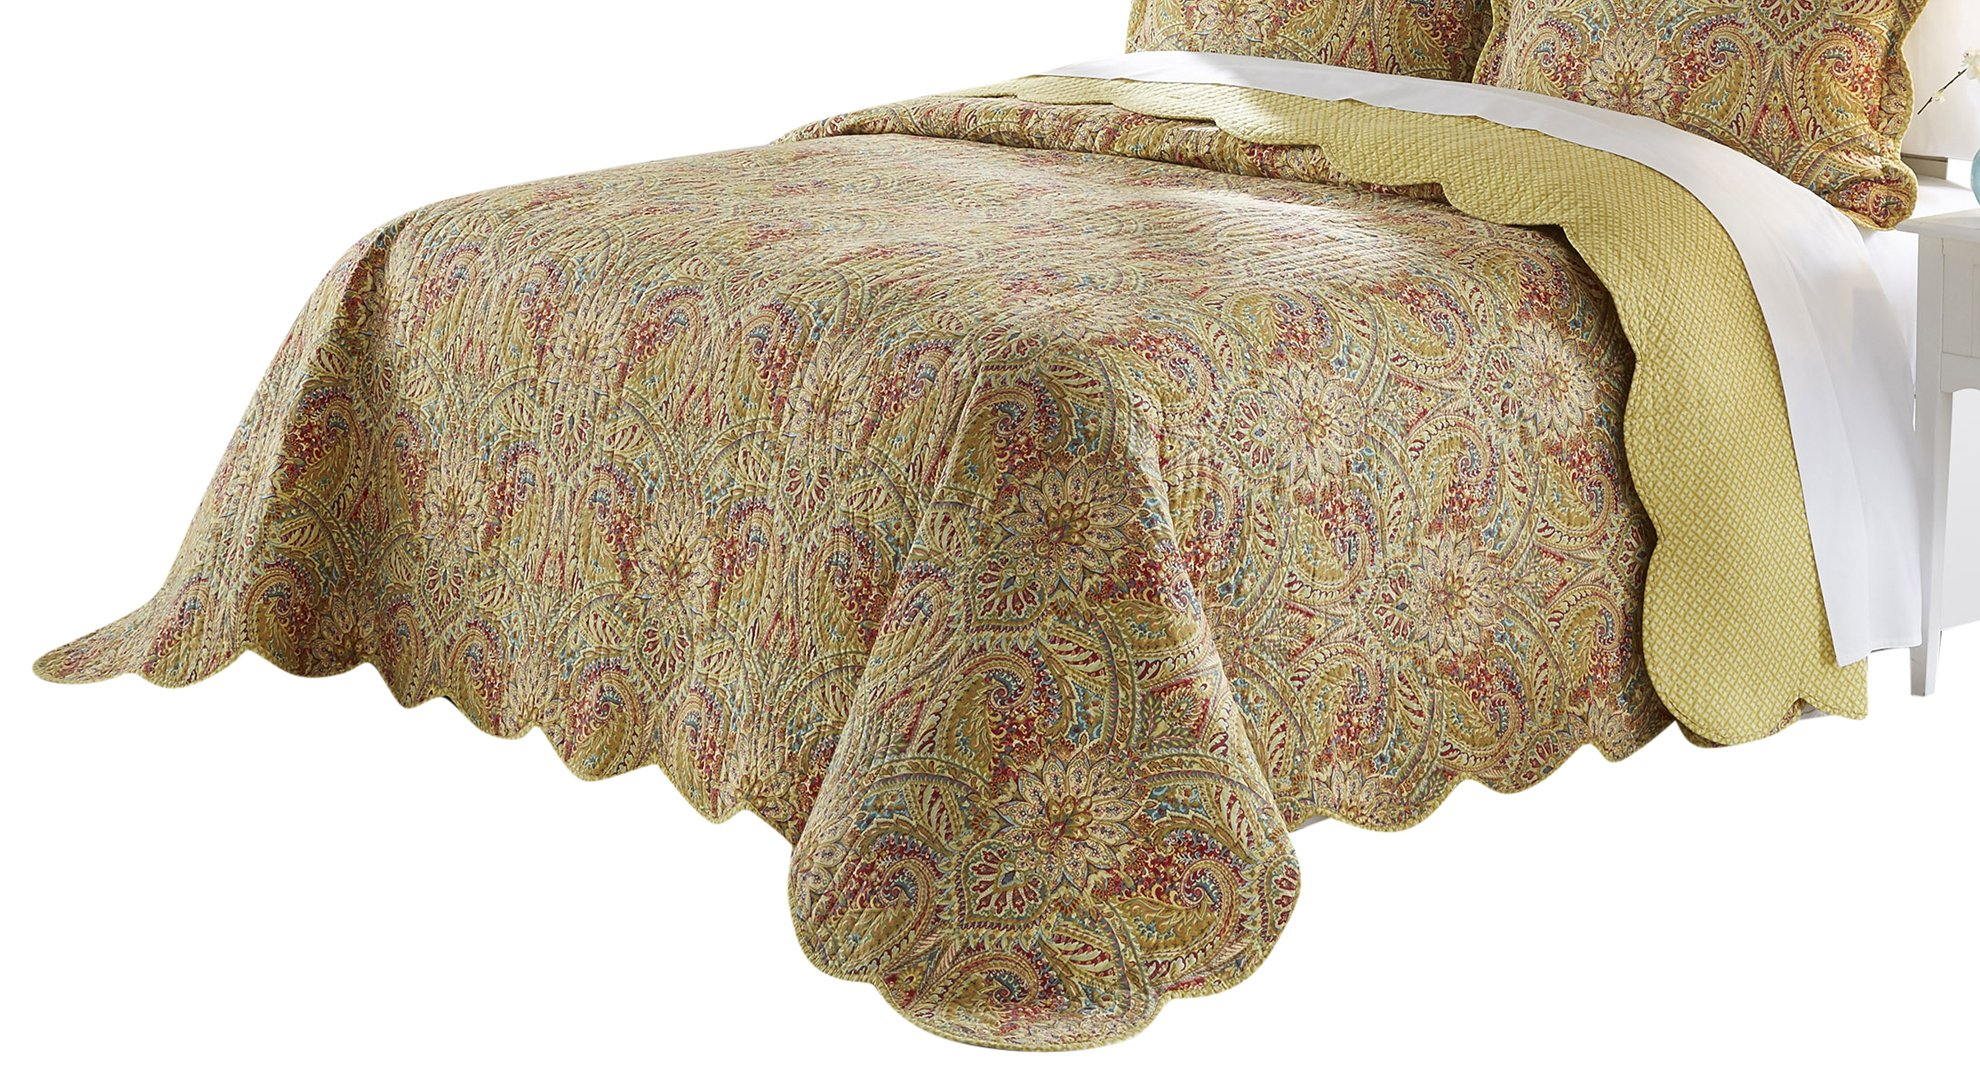 Waverly Swept Away Bedspread Collection, 96''x110'', Berry